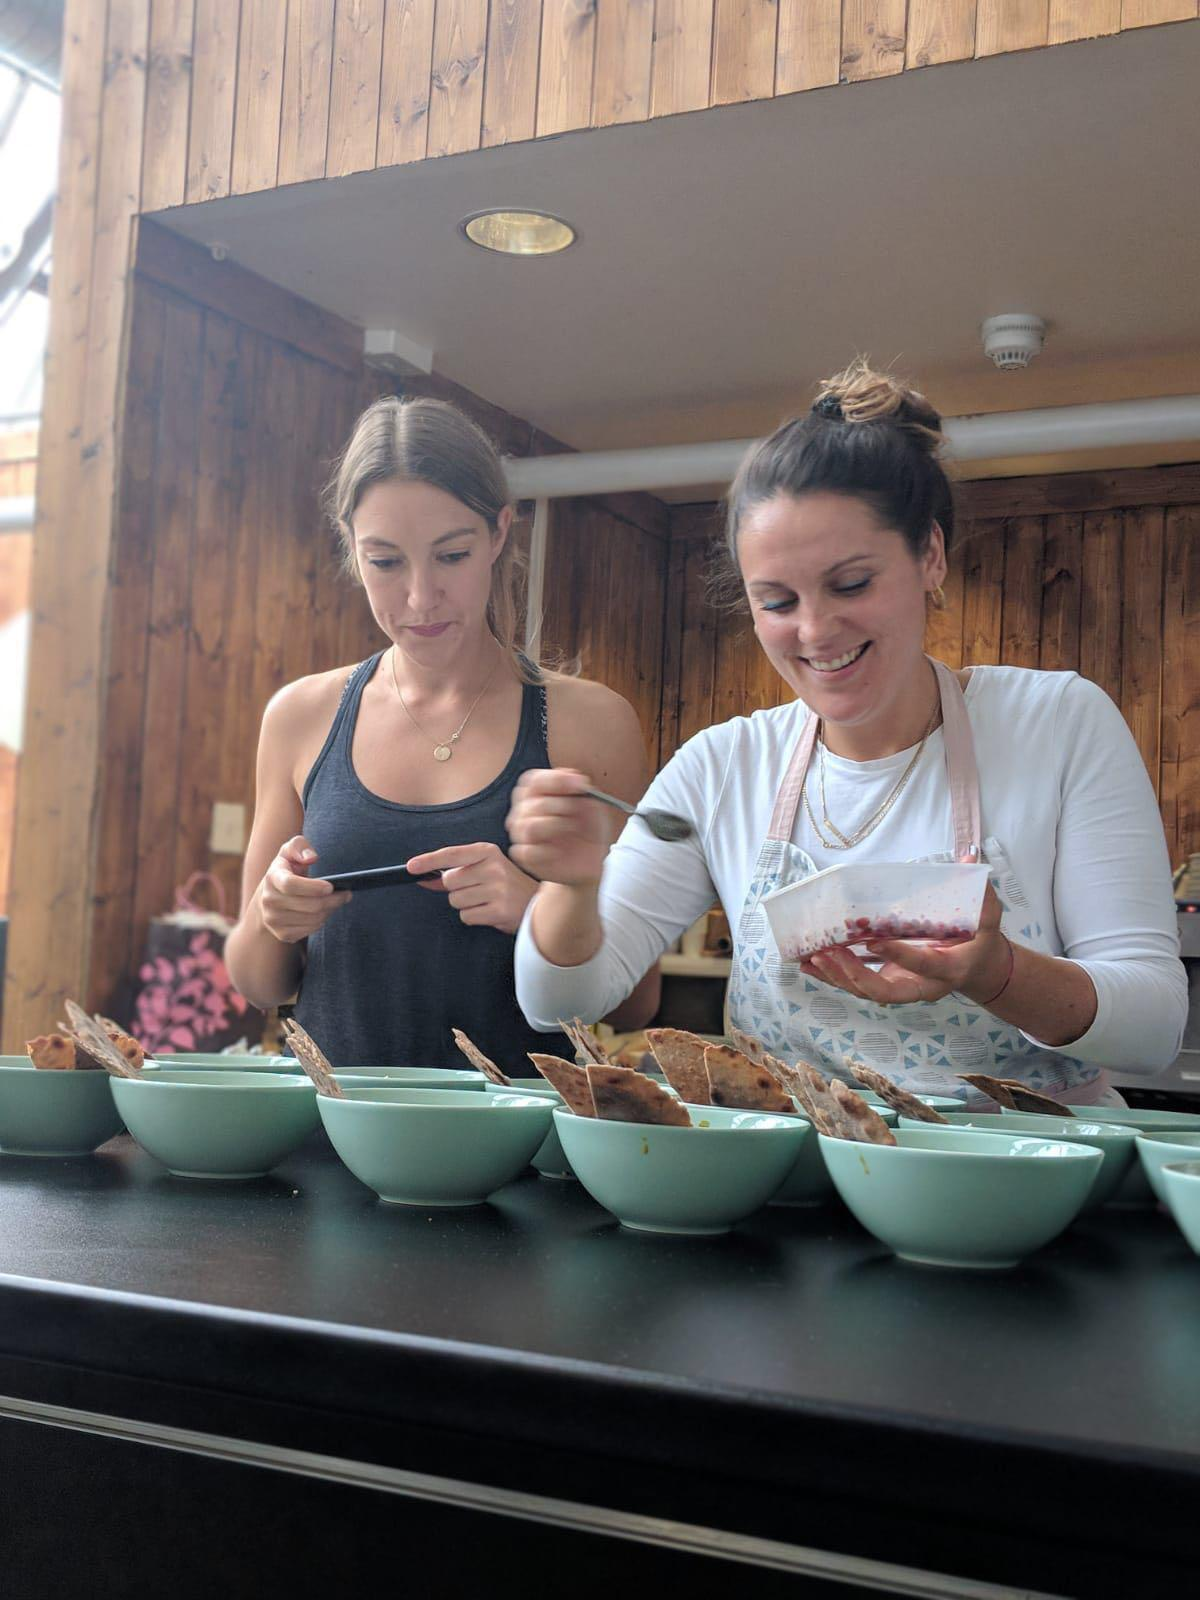 SOLD OUT - Yoga Bowl Events; 'Rest & Digest' ~ Yoga & CBD Infused Lunch